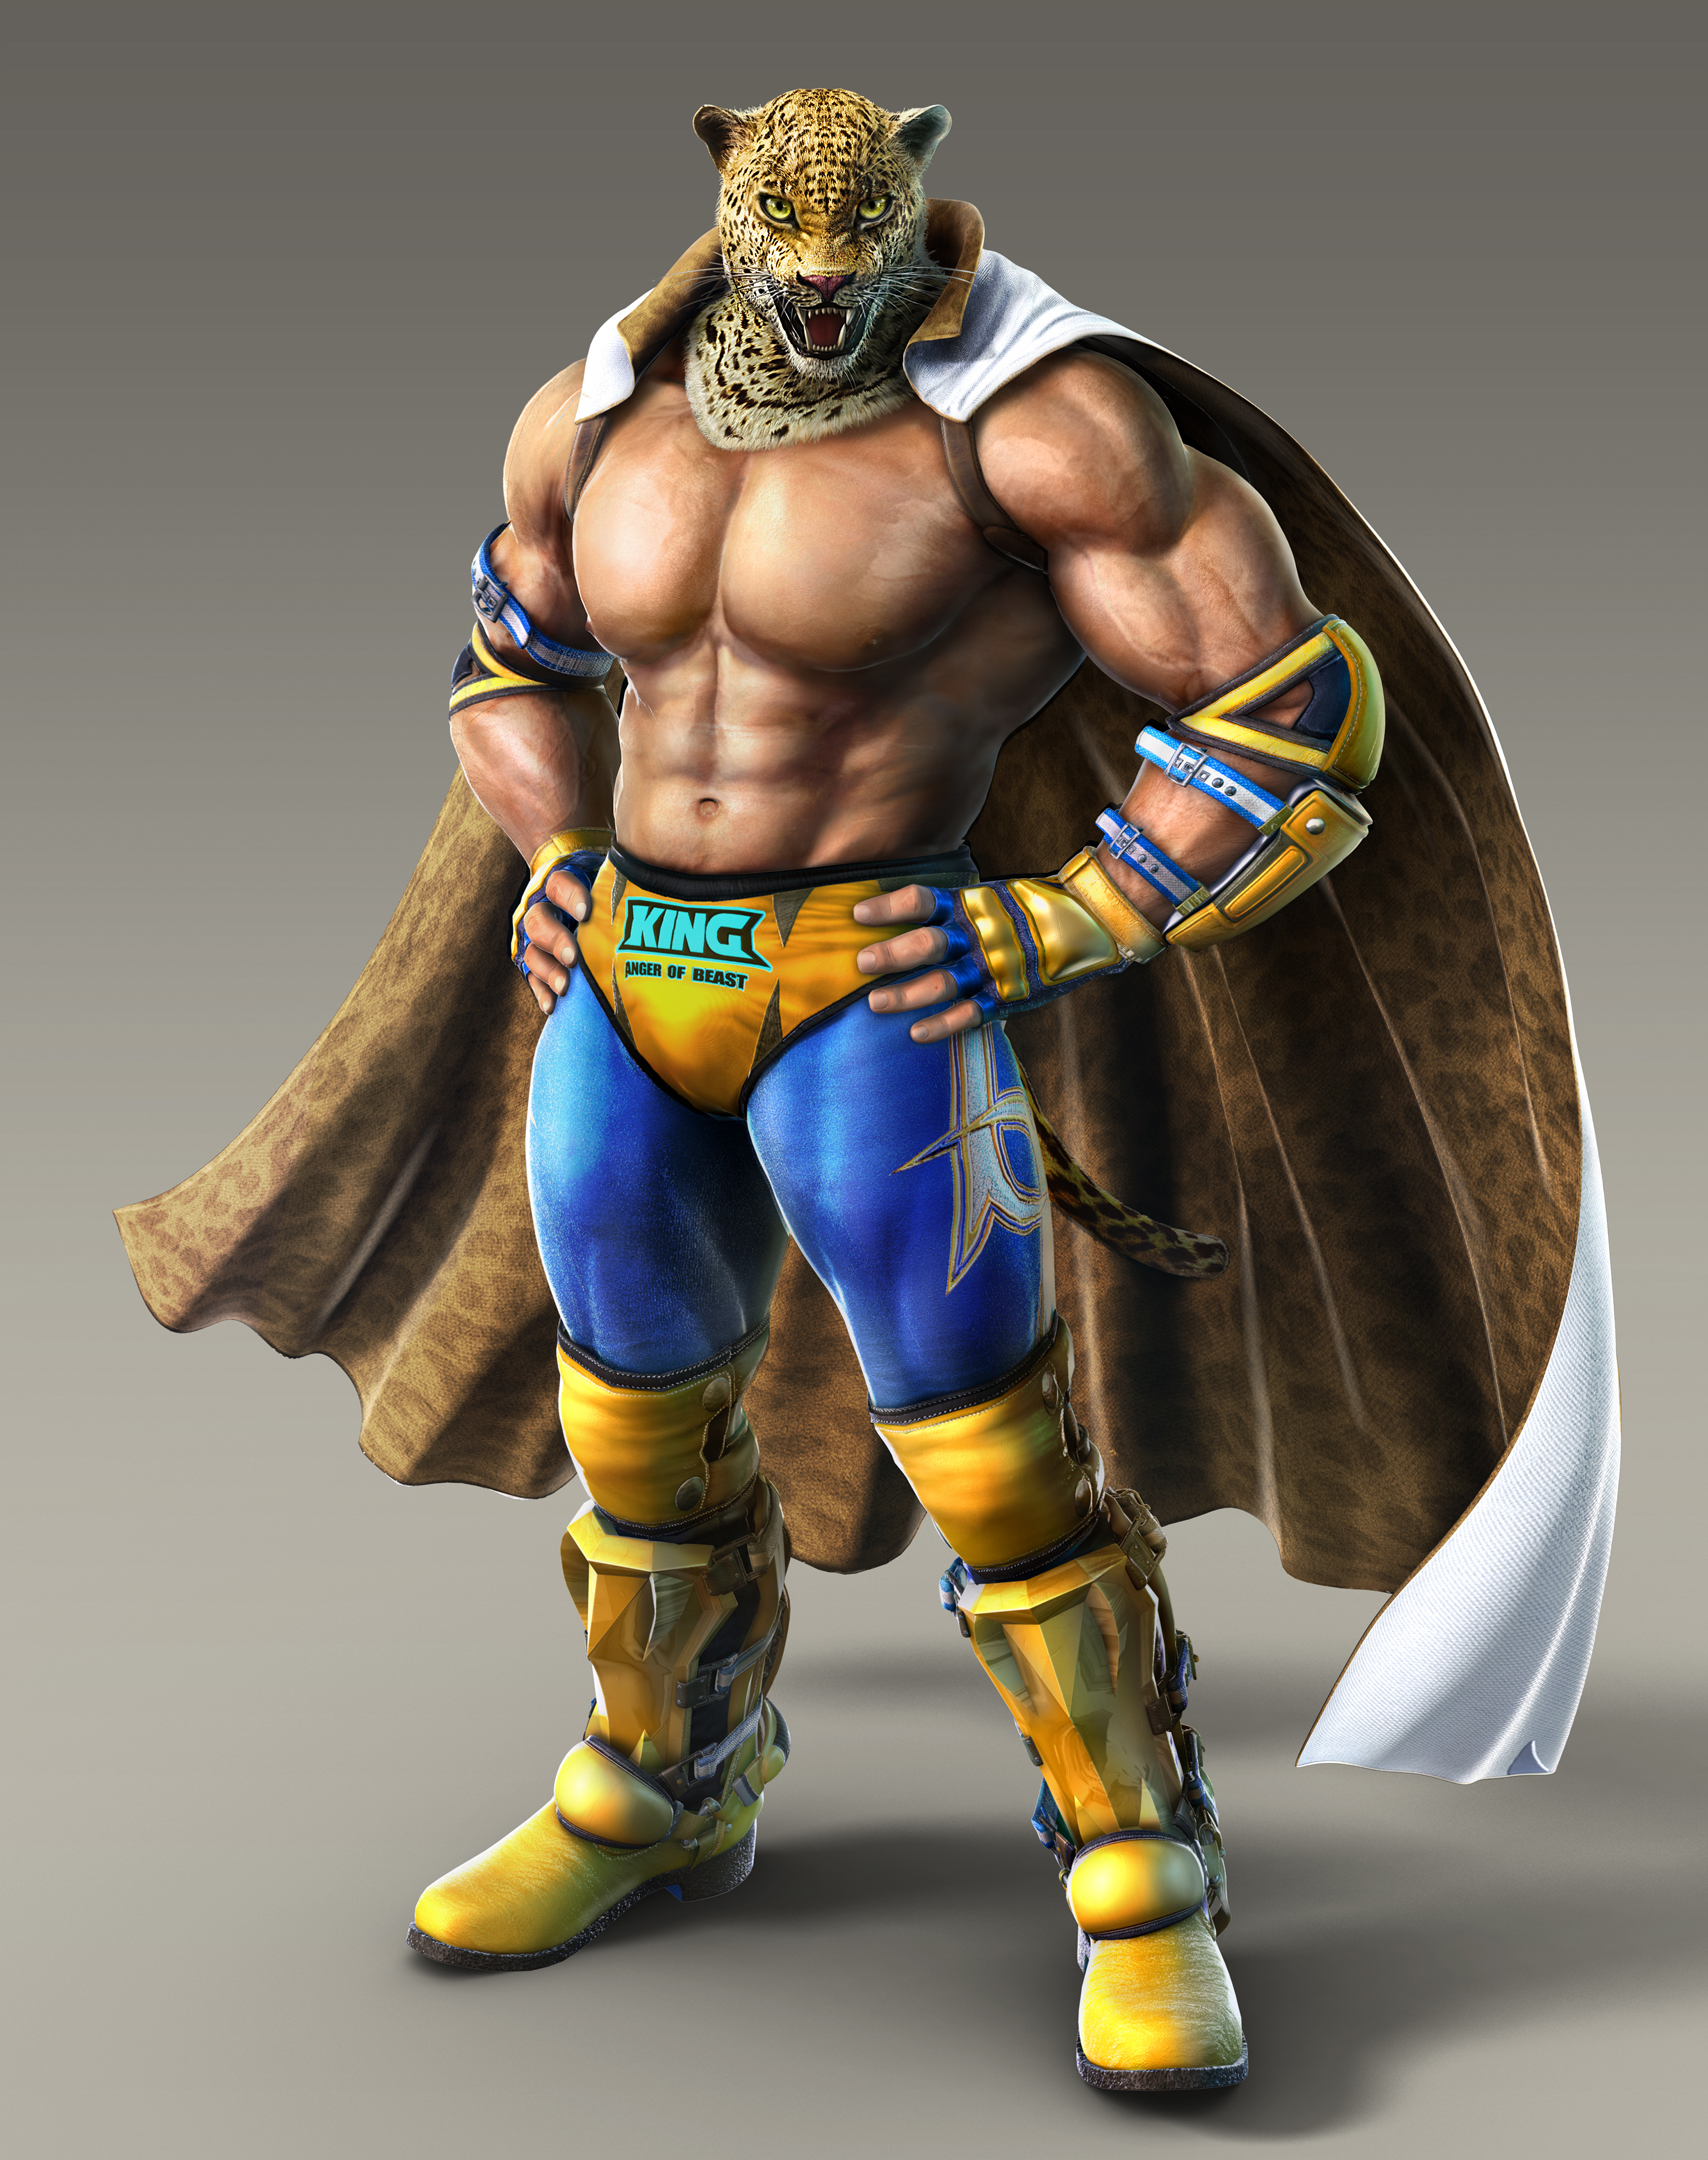 King II | Tekken Wiki | FANDOM powered by Wikia